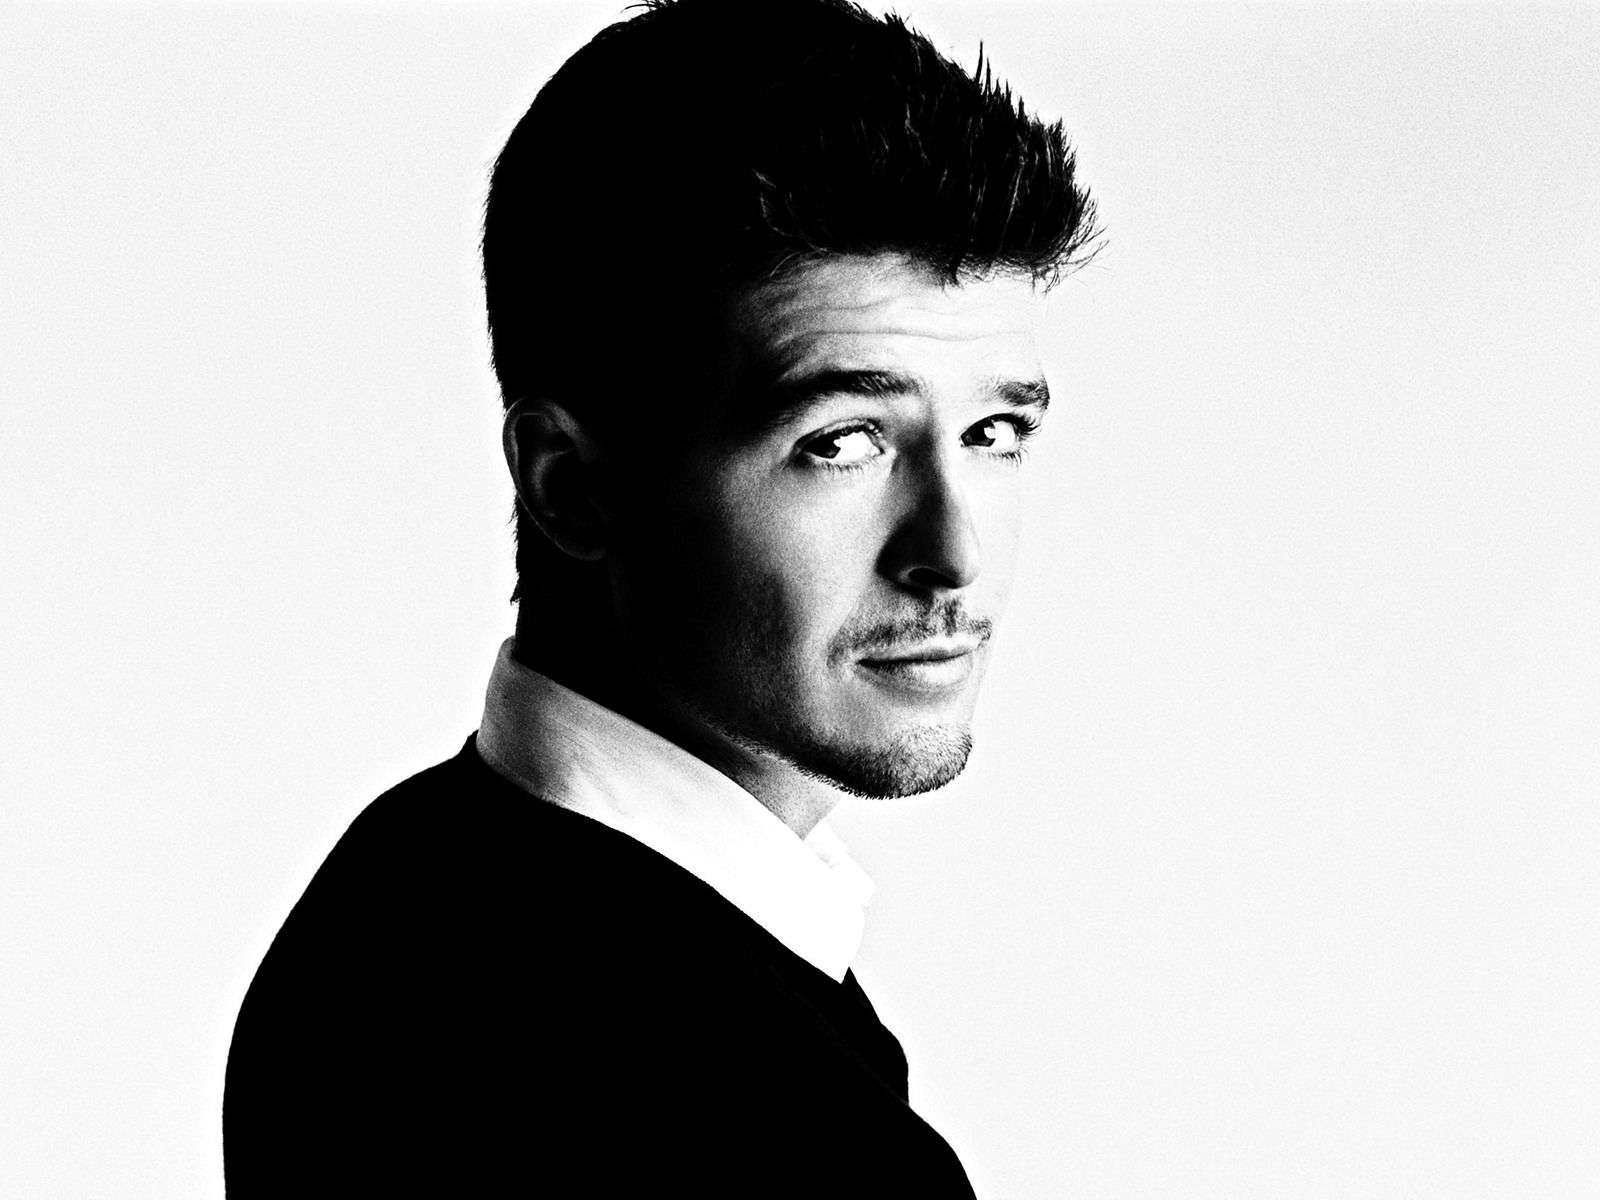 1600x1200 - Alan Thicke Wallpapers 11